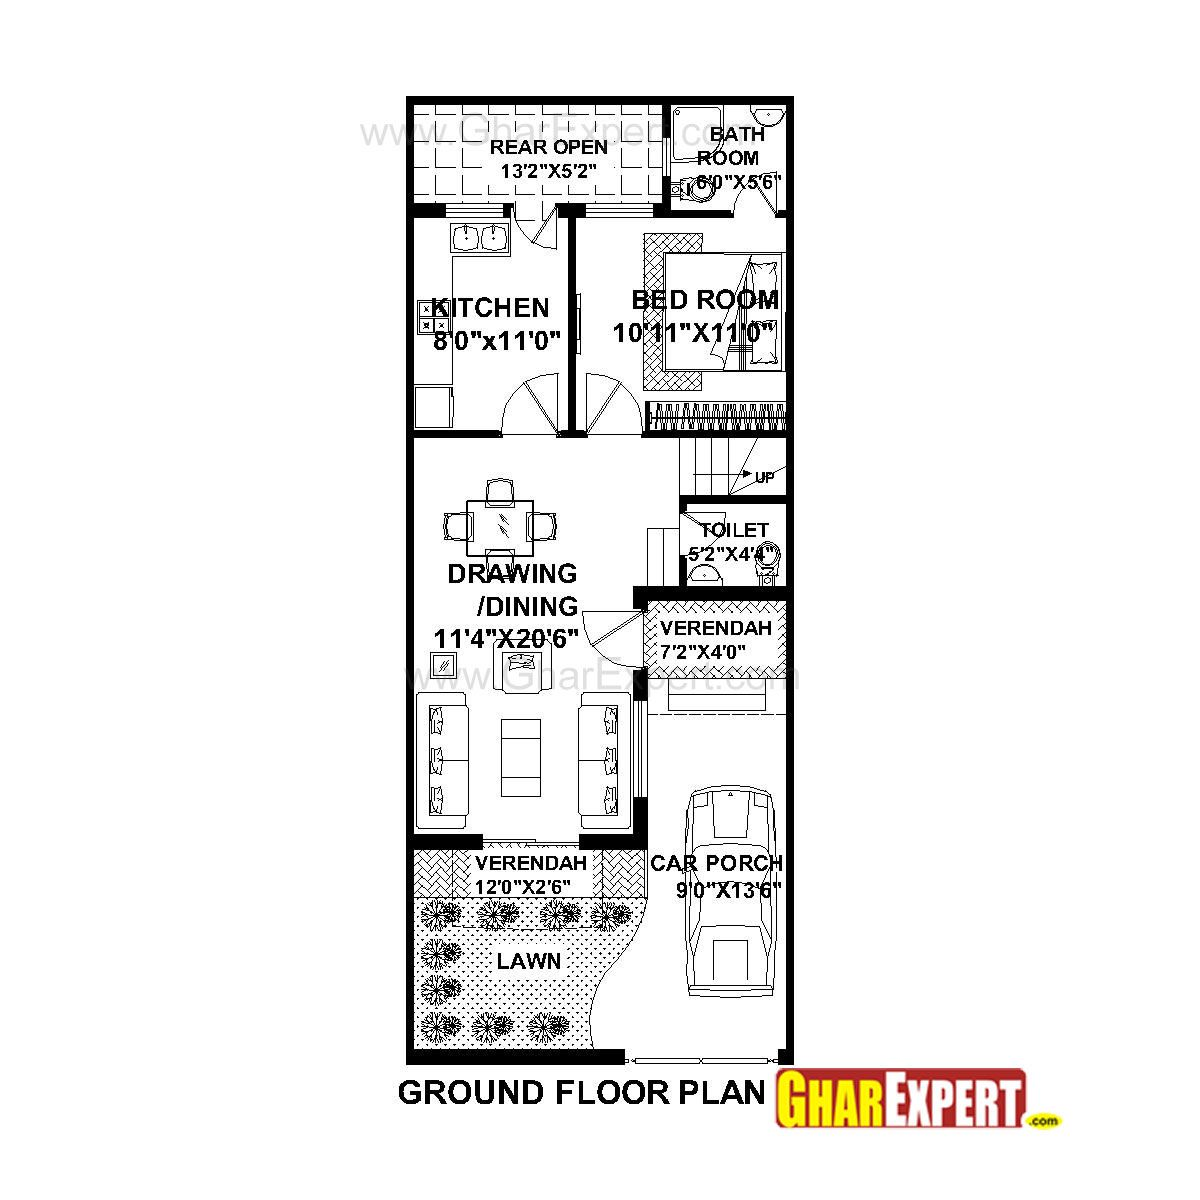 House plan for 20 feet by 50 feet plot plot size 111 for What is a plot plan of a house